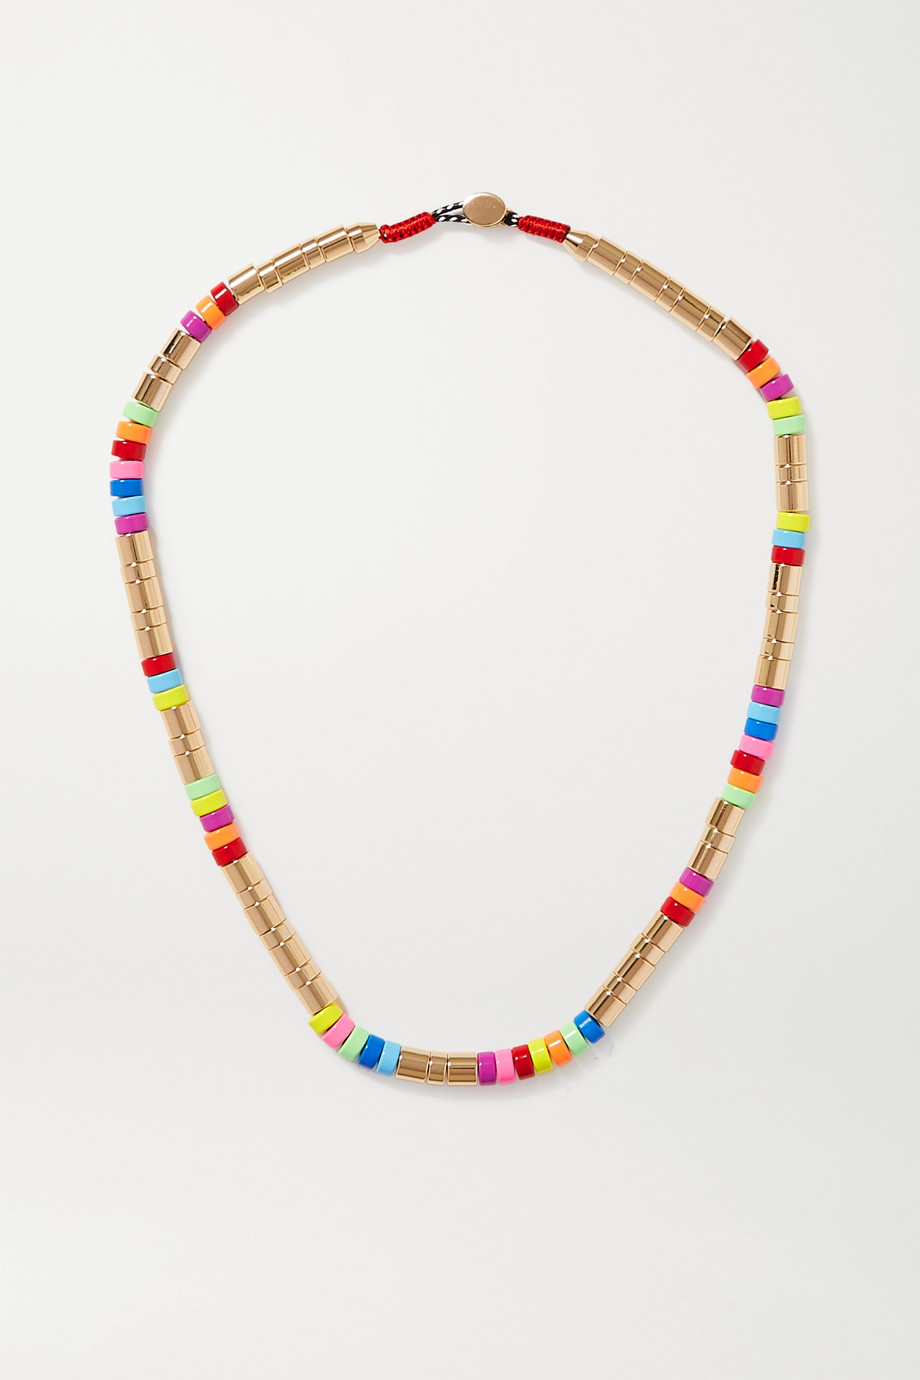 ROXANNE ASSOULIN Enamel and gold-tone necklace